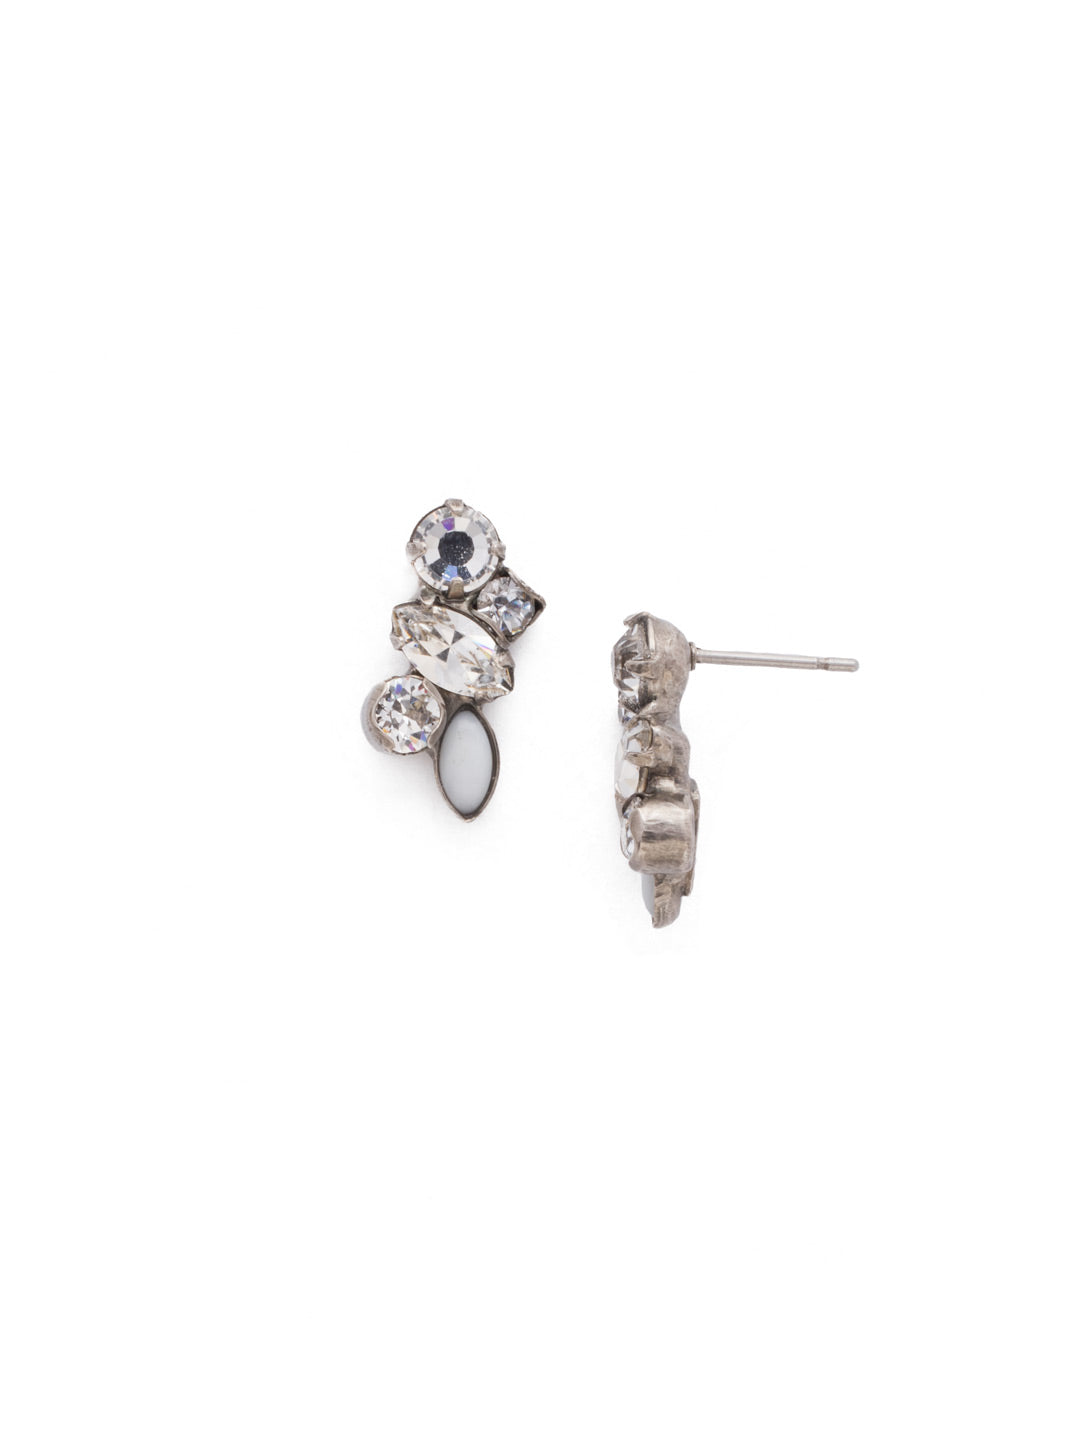 Petite Crystal Cluster Post Earrings - EDG5ASCRY